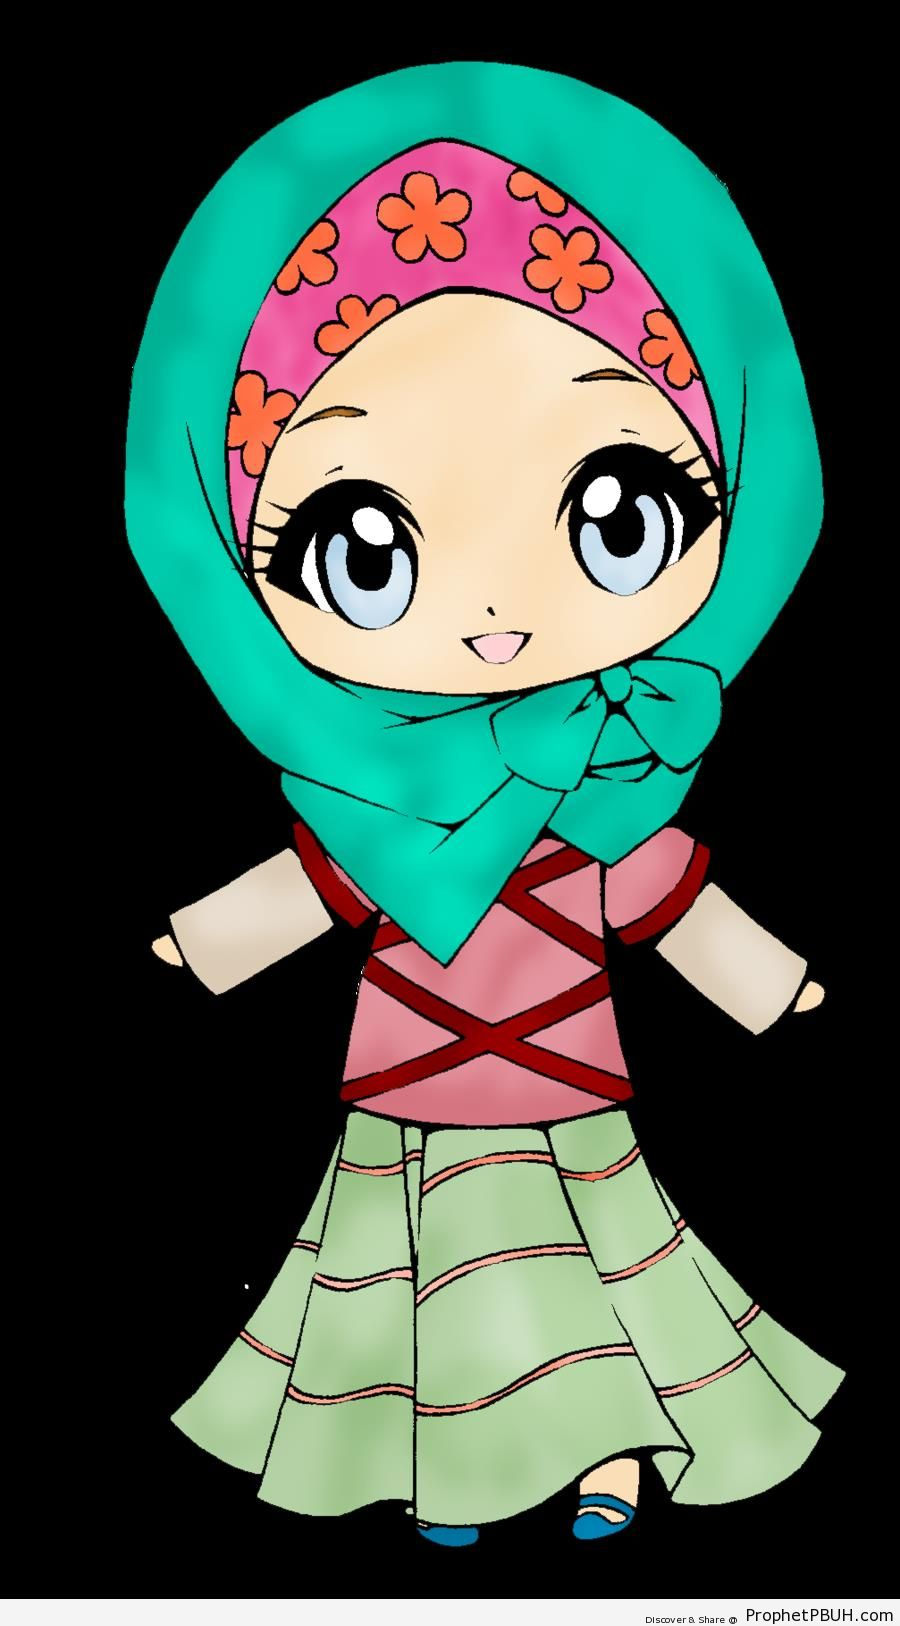 Happy Chibi Hijabi - Chibi Drawings (Cute Muslim Characters)